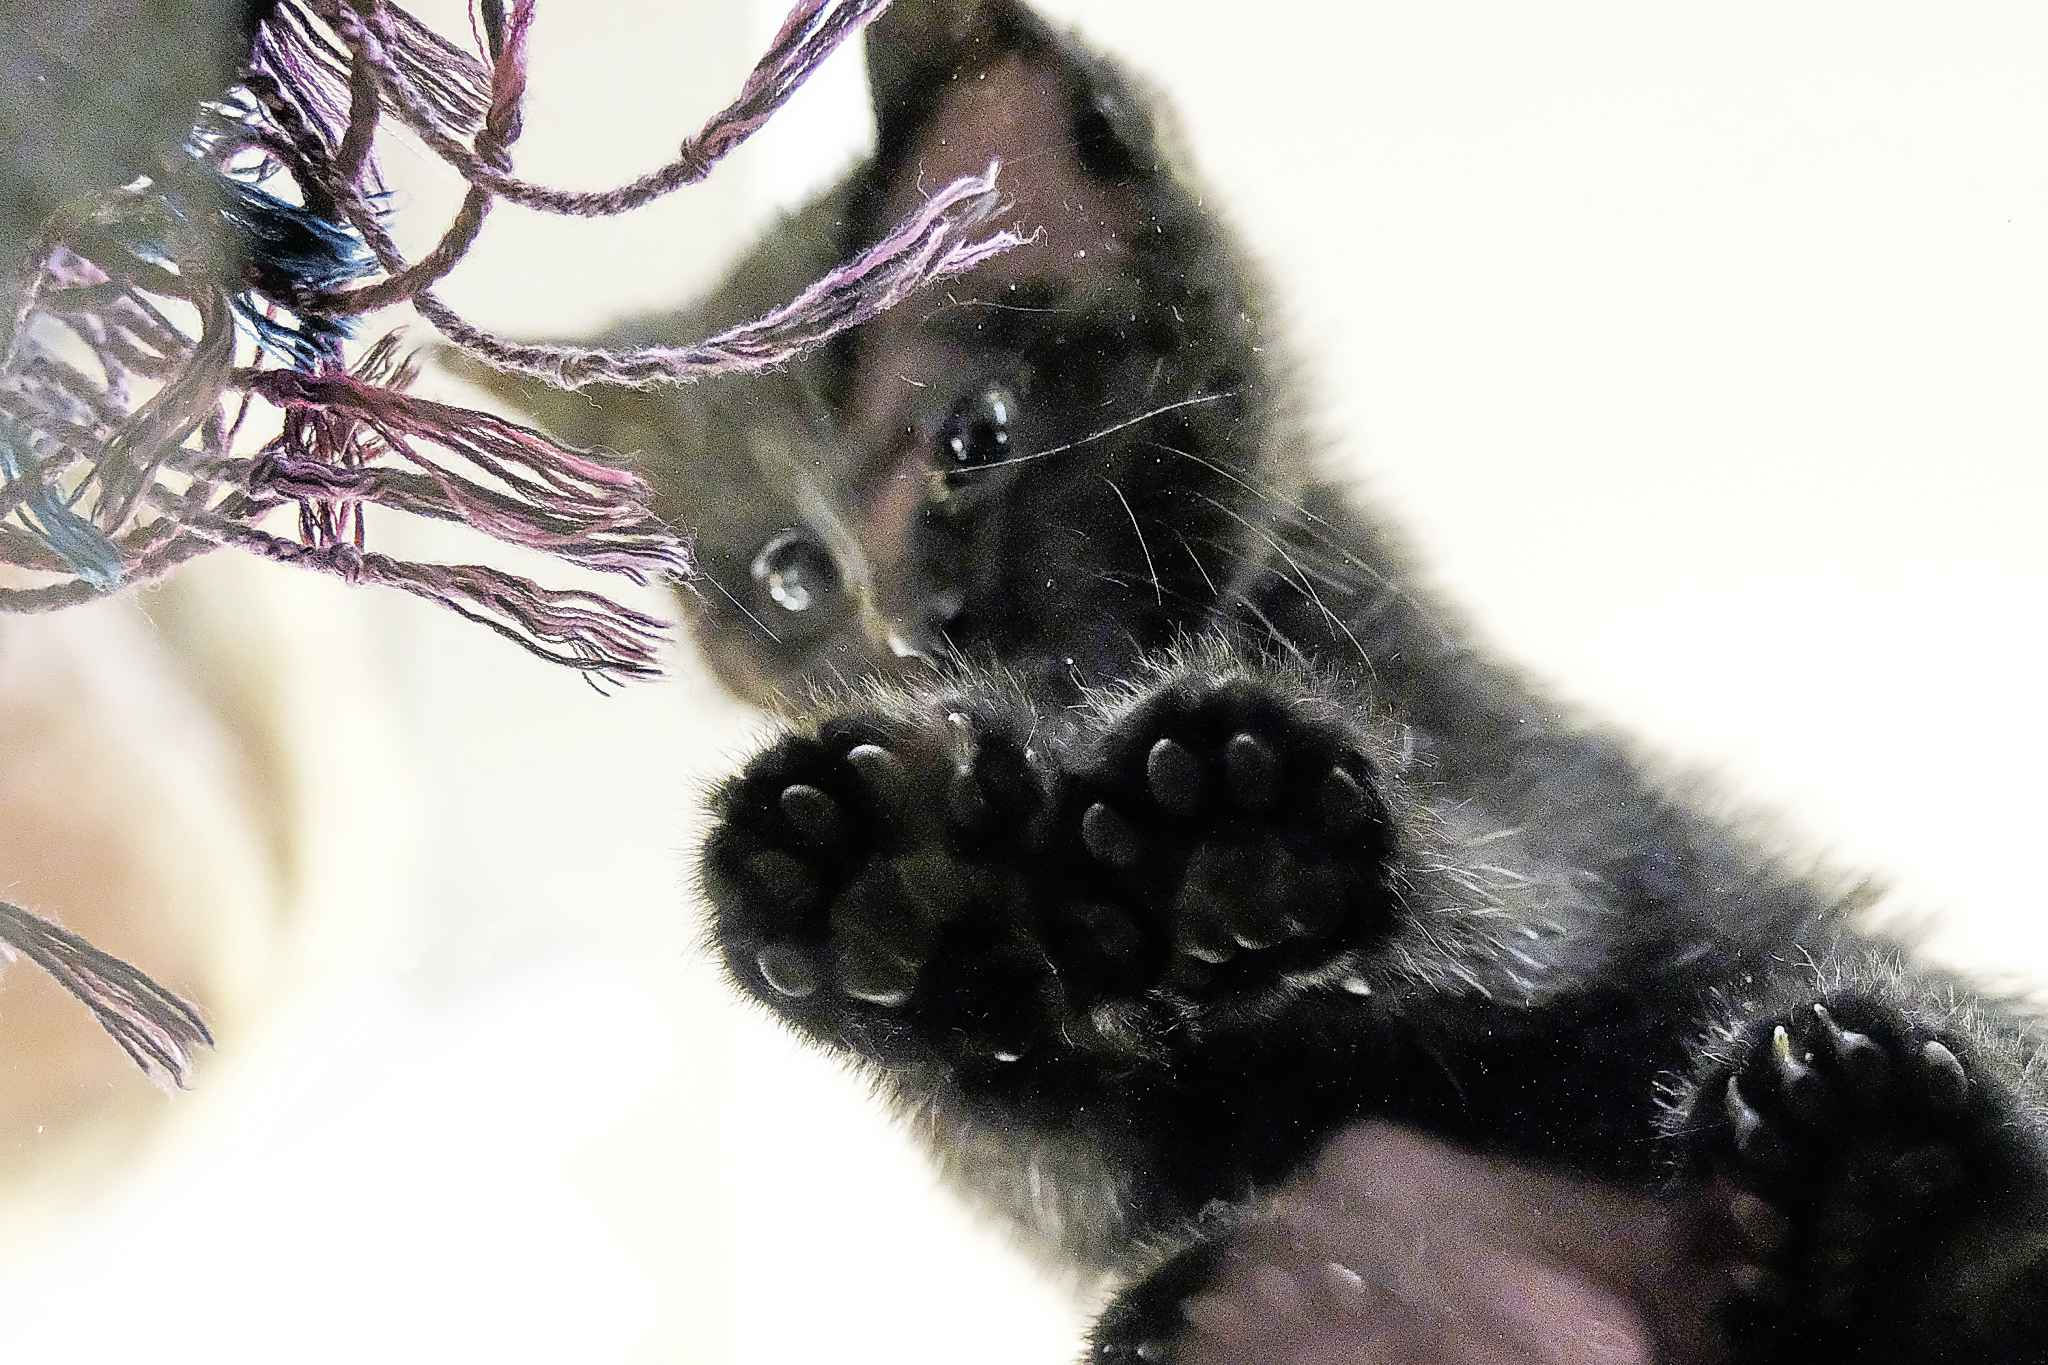 Polly the six-toed kitten turning heads at thrift shop